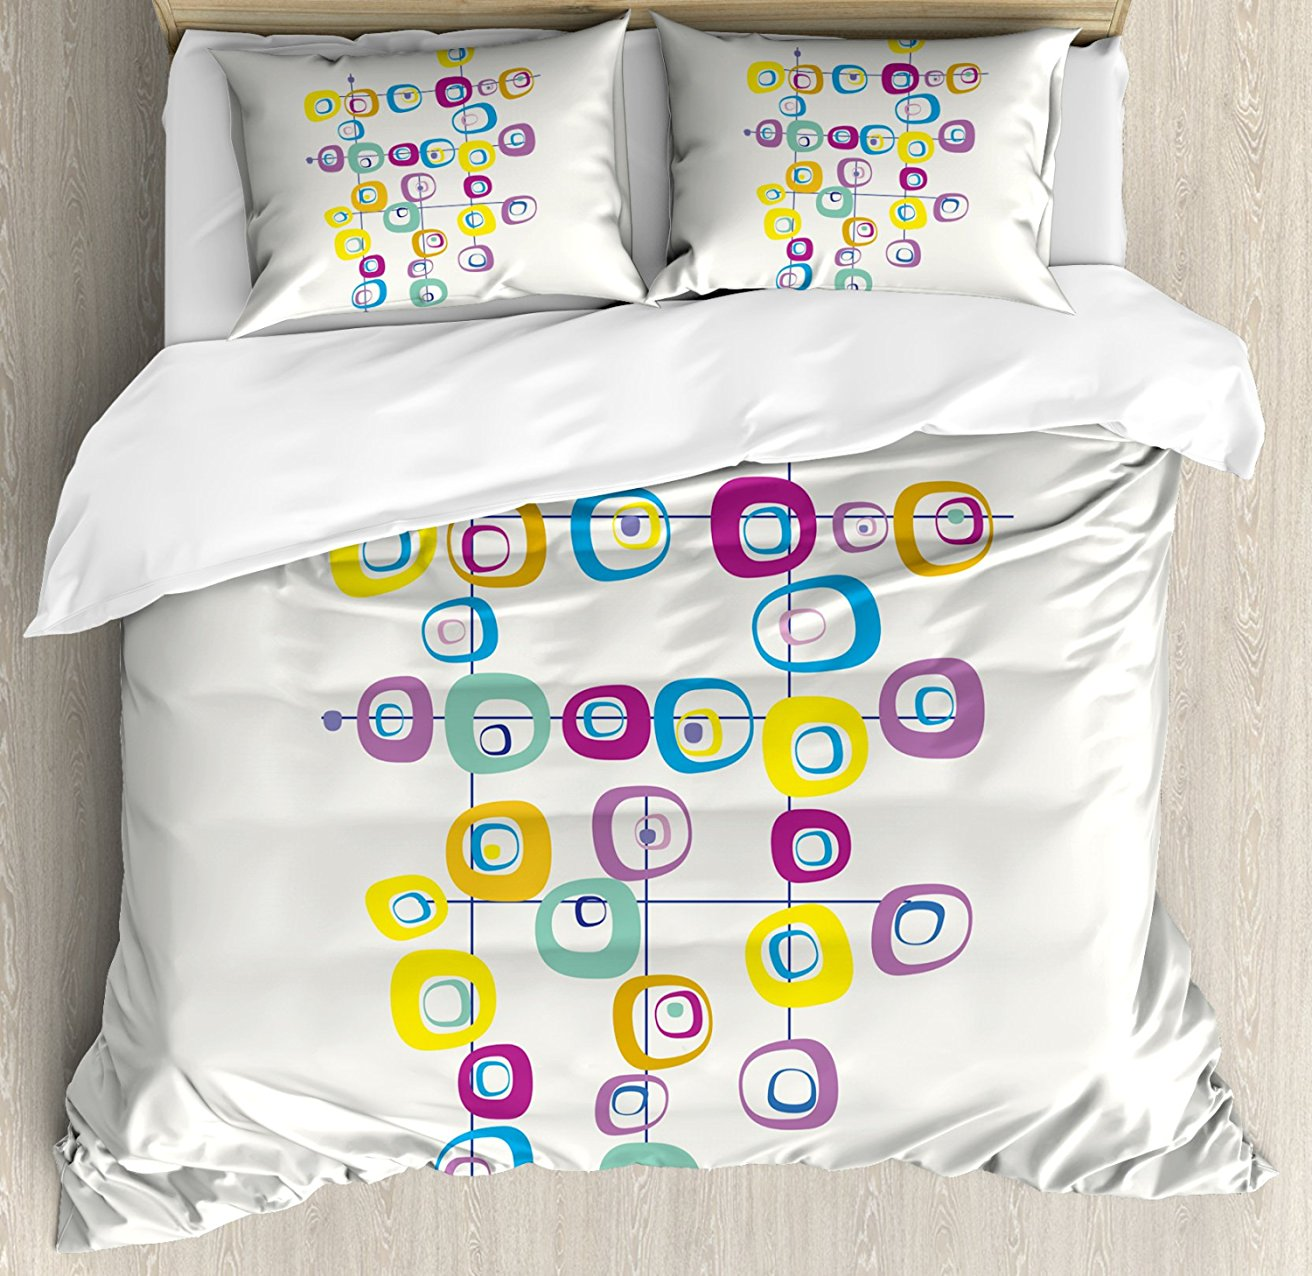 Mid Century Duvet Cover Set Hippie Artistic Squares on Intersecting Lines Colored Cool and Crazy Themed Art, 4 Piece Bedding Set